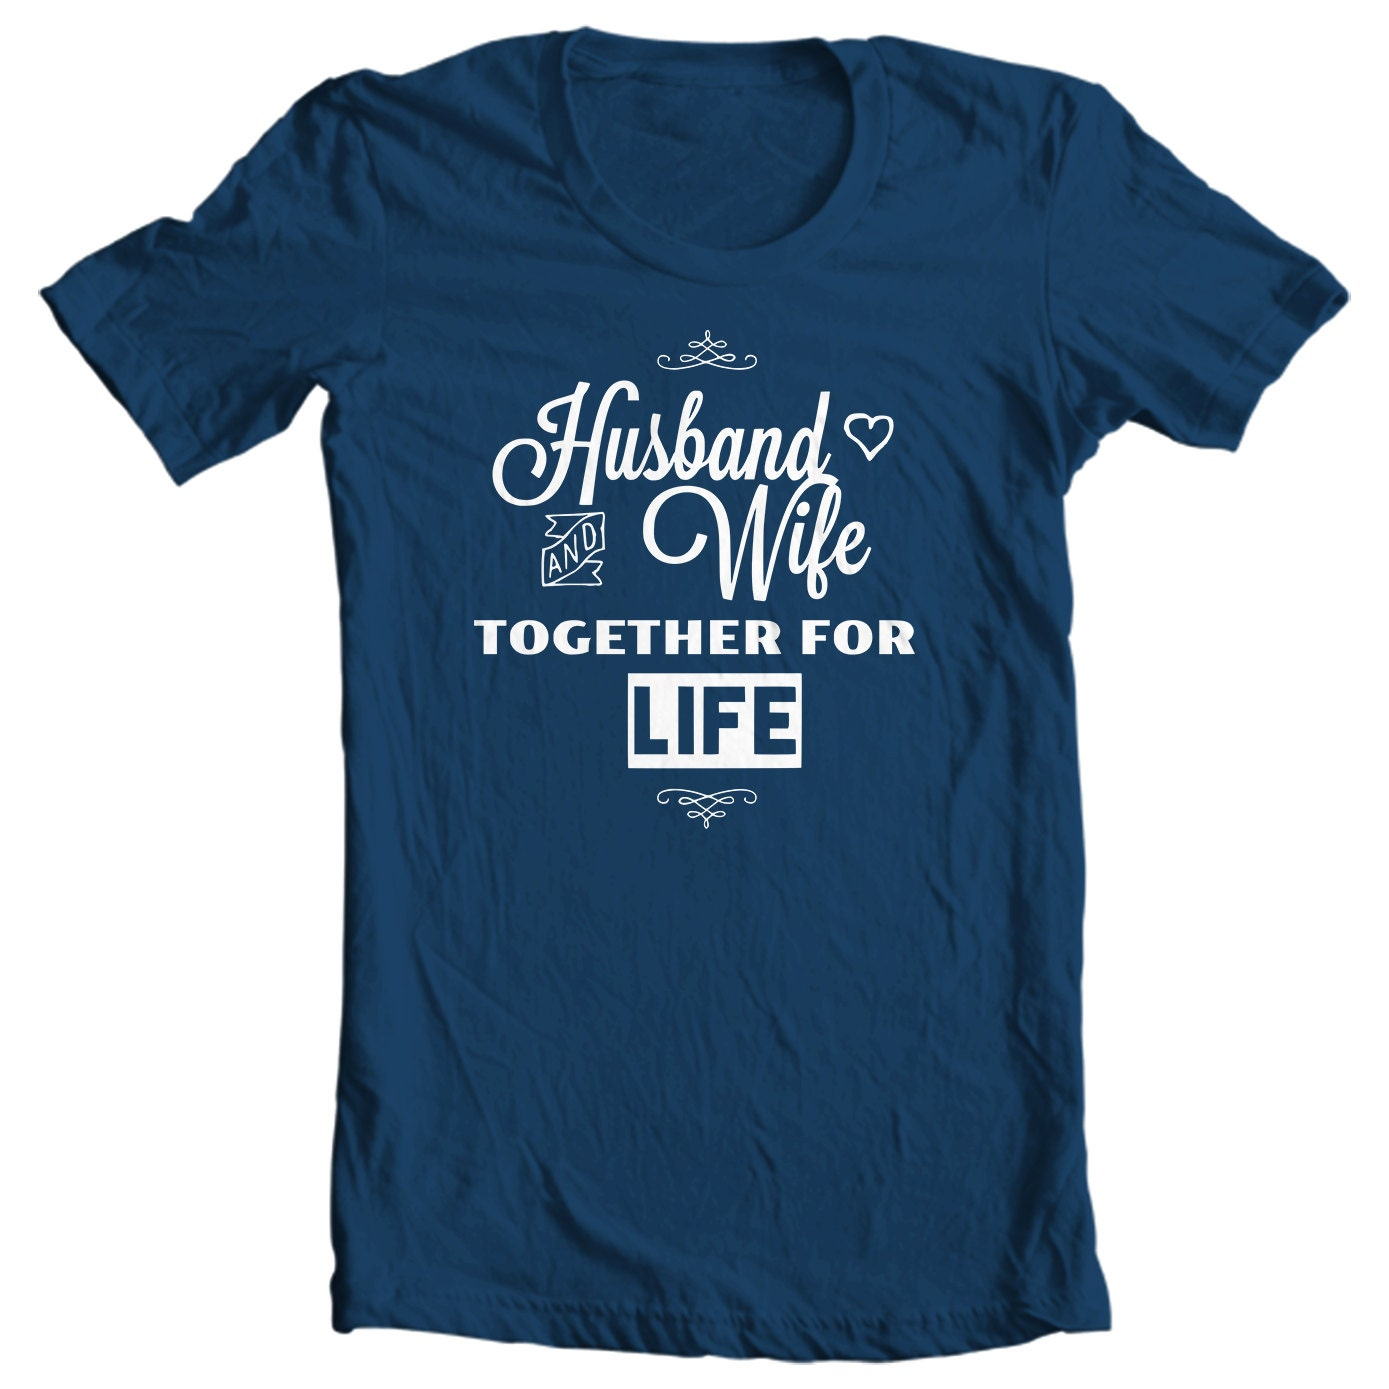 Husband & Wife Together For Life Mens T-shirt Christian Clothing